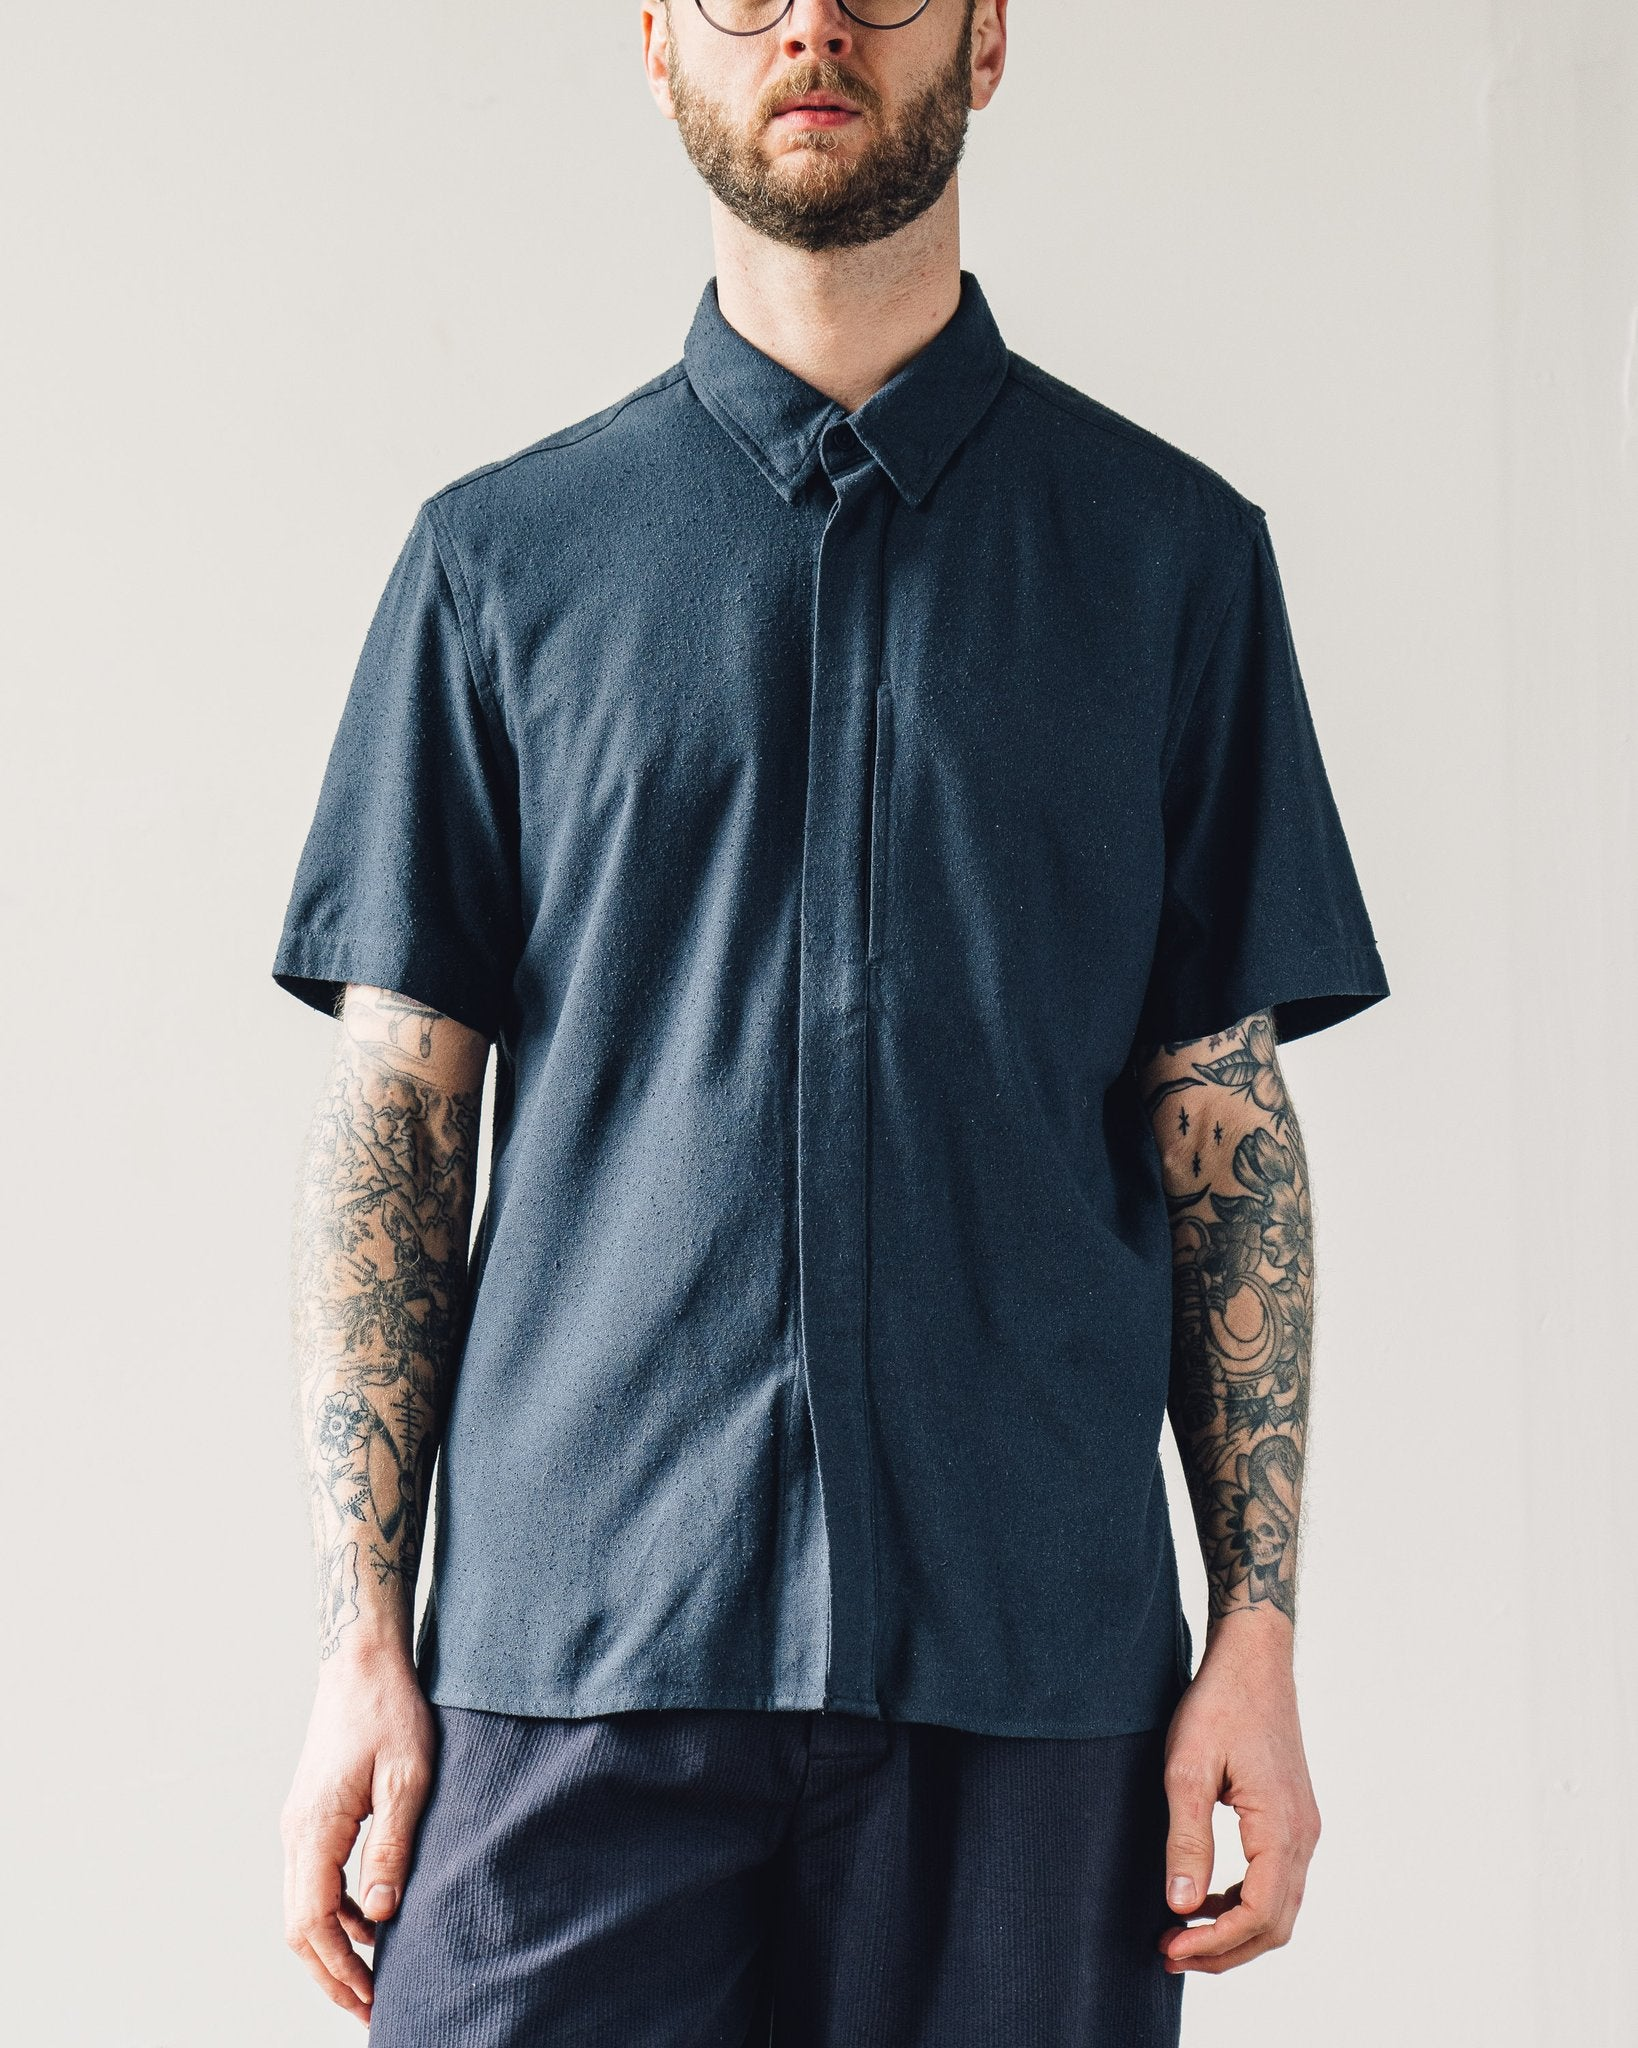 7115 Men's Short Sleeve Side Pocket Shirt, Navy